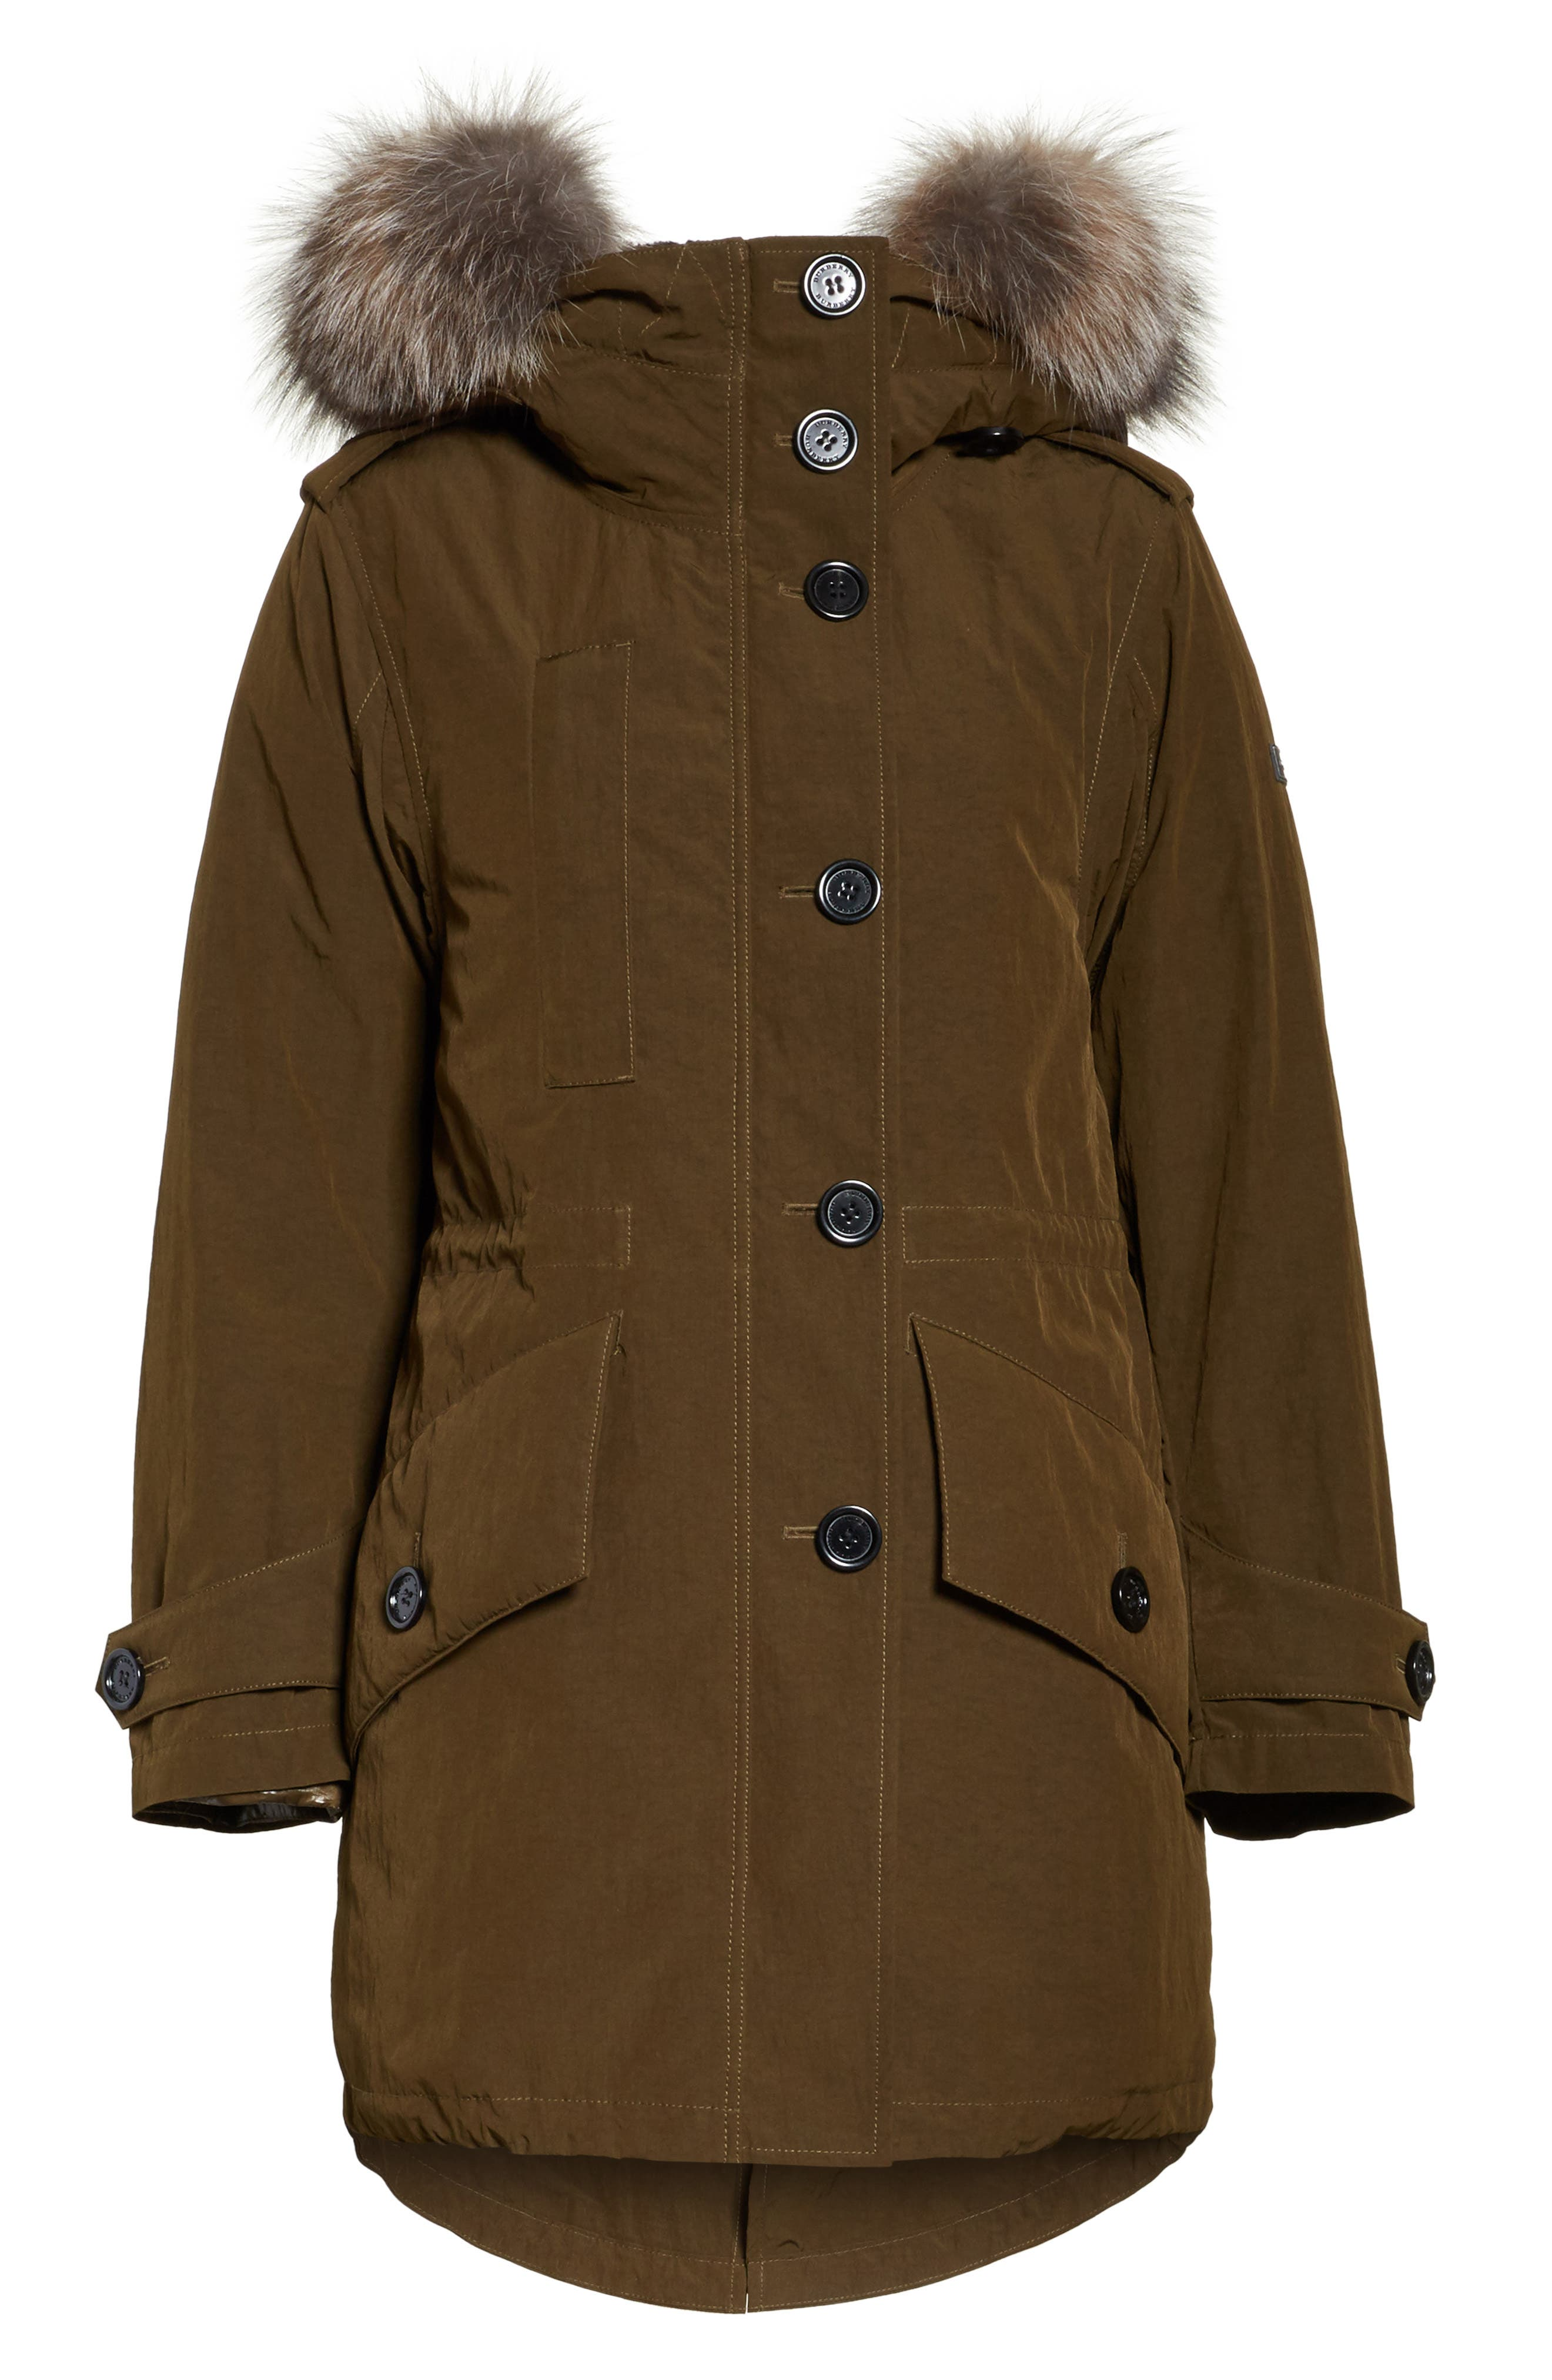 Ramsford 3-in-1 Hooded Parka with Genuine Fox Fur & Genuine Shearling Trim,                             Alternate thumbnail 6, color,                             301